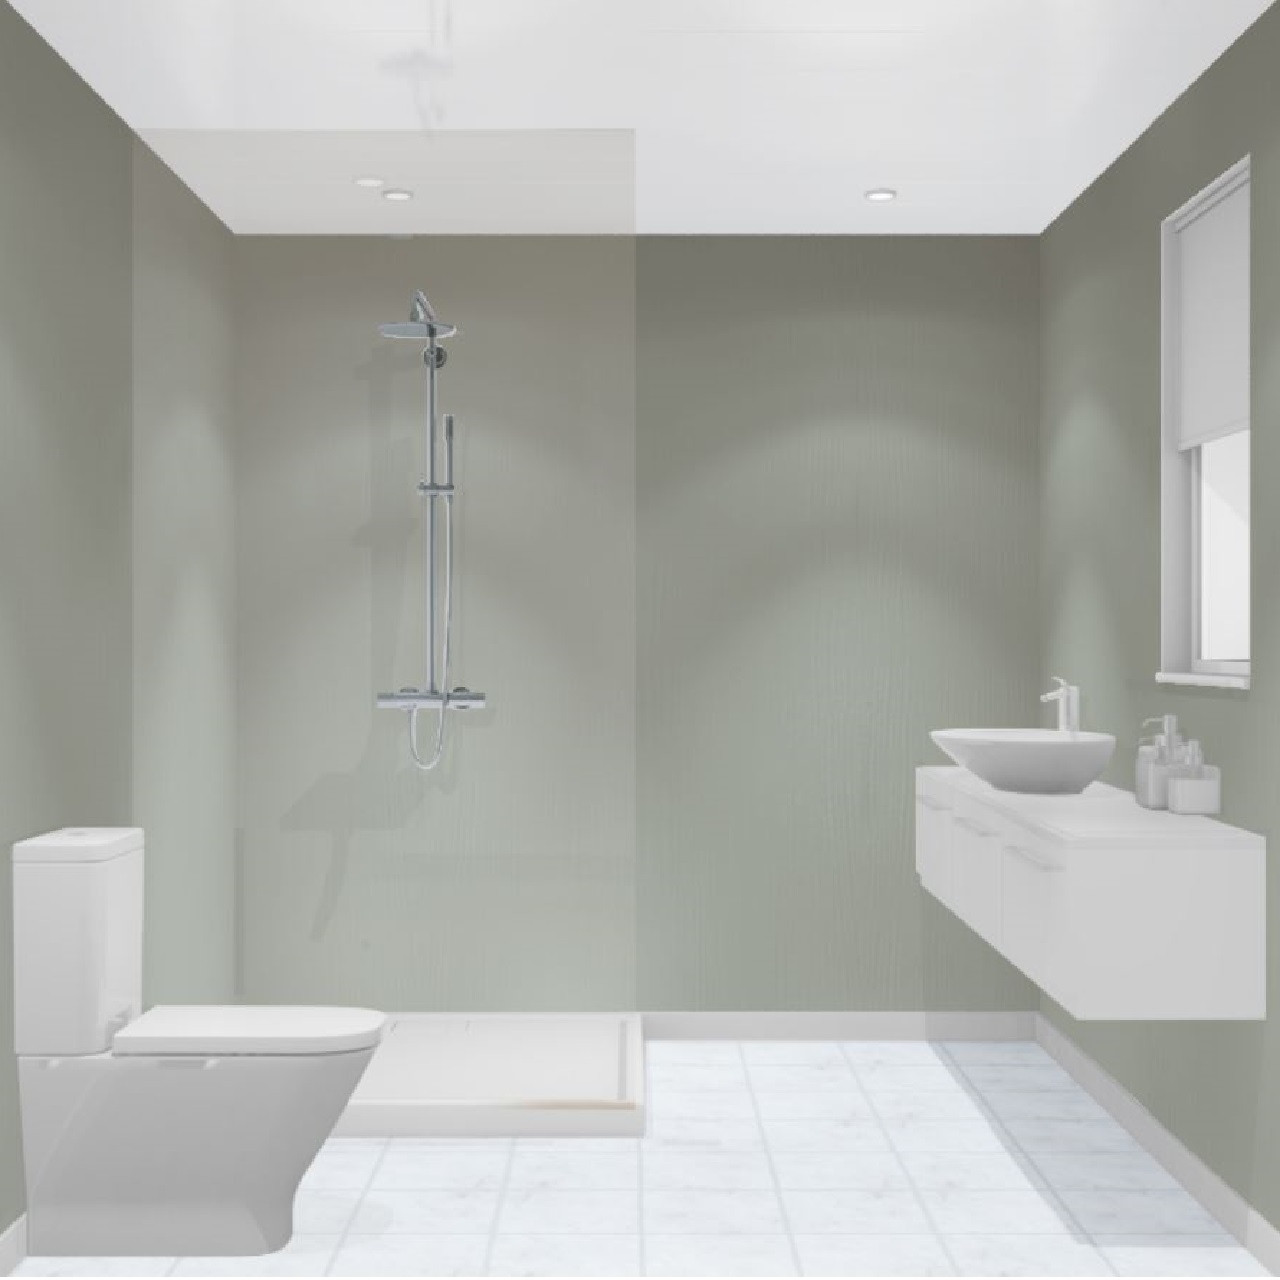 Multipanel Heritage Winchester Linewood Hydro-Lock Tongue & Groove Bathroom Wall Panel